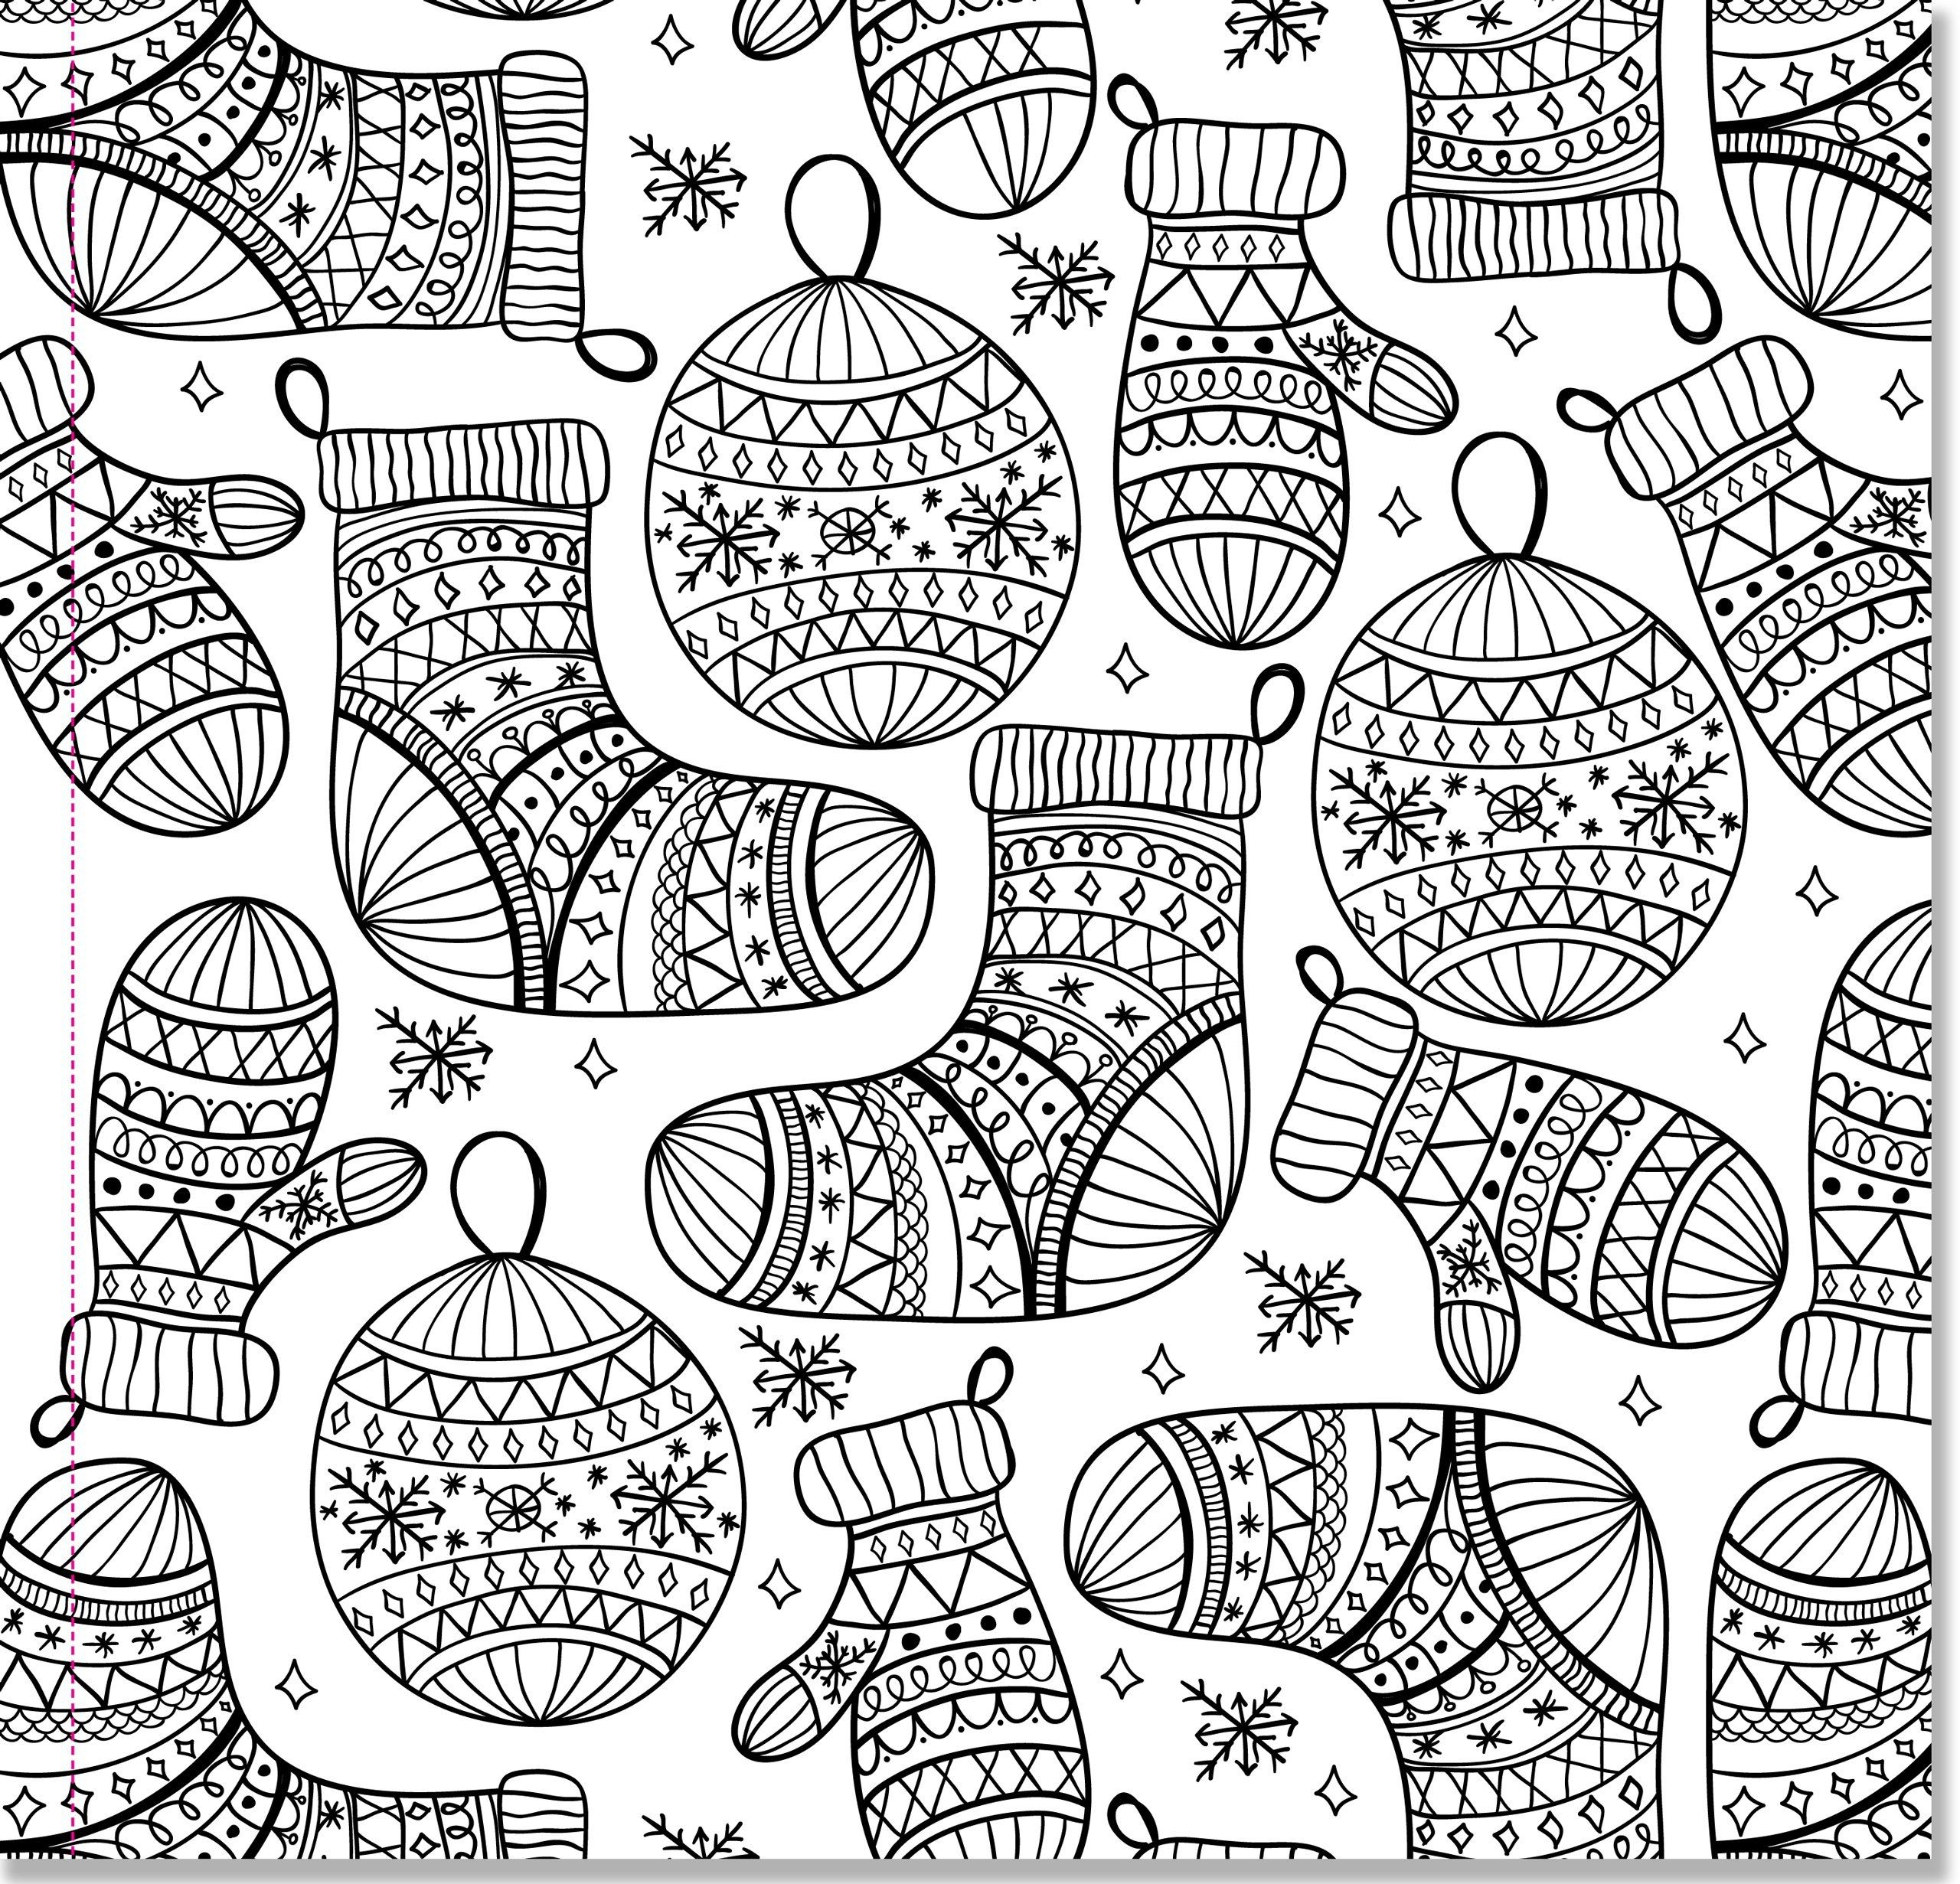 Christmas Detailed Coloring Pages With For Adults Printable To Print Free